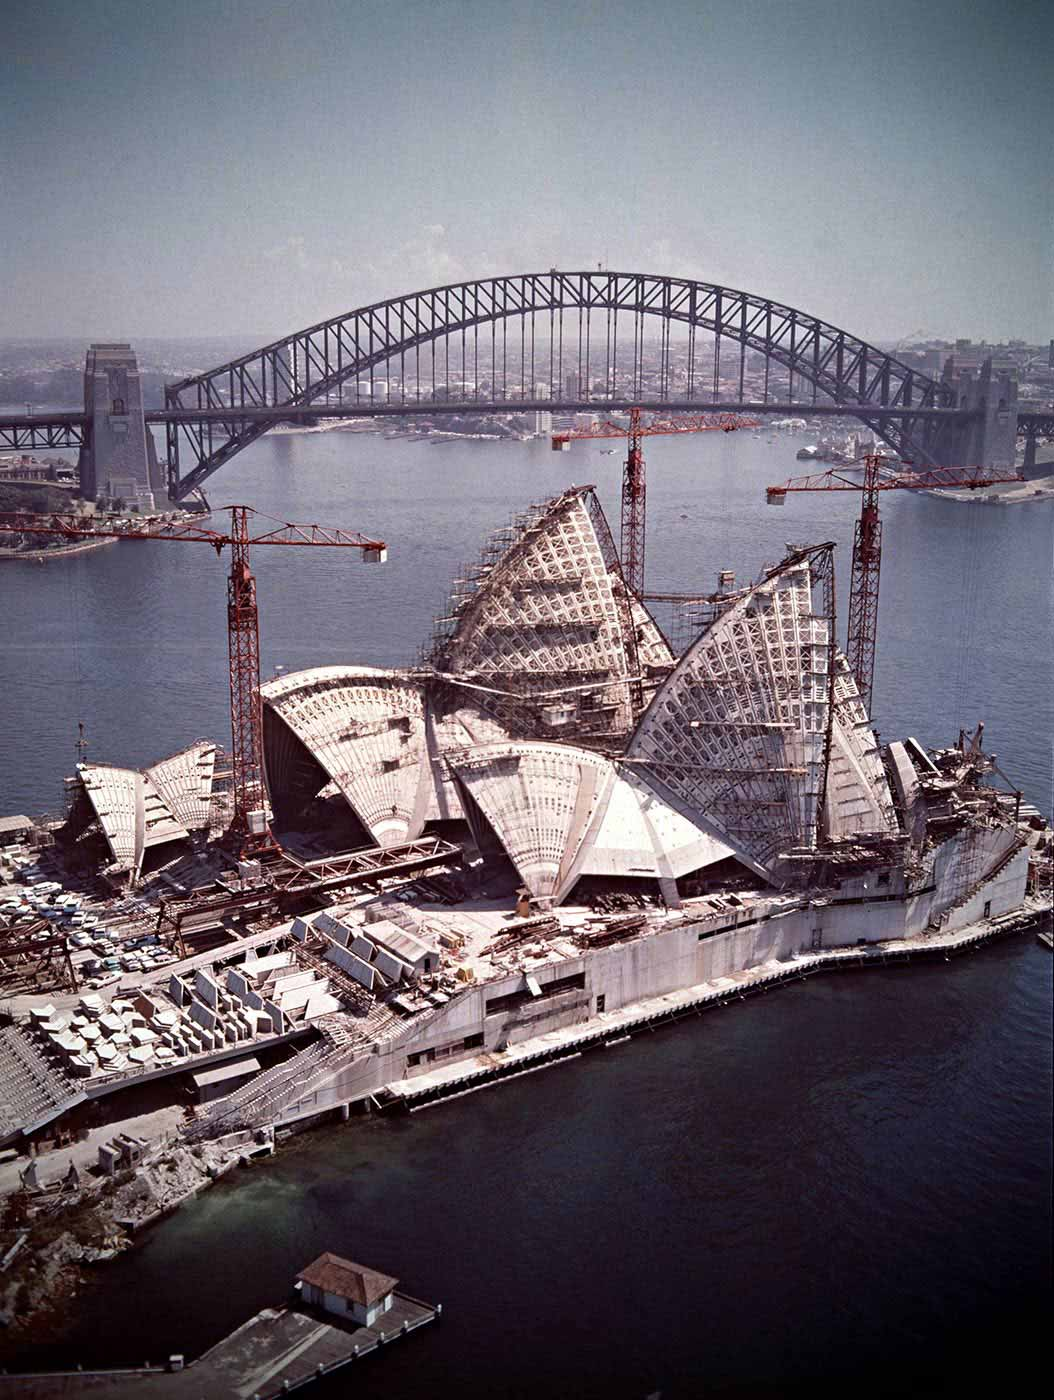 The almost completed Opera House in foreground surrounded by cranes, with Harbour Bridge in background. - click to view larger image